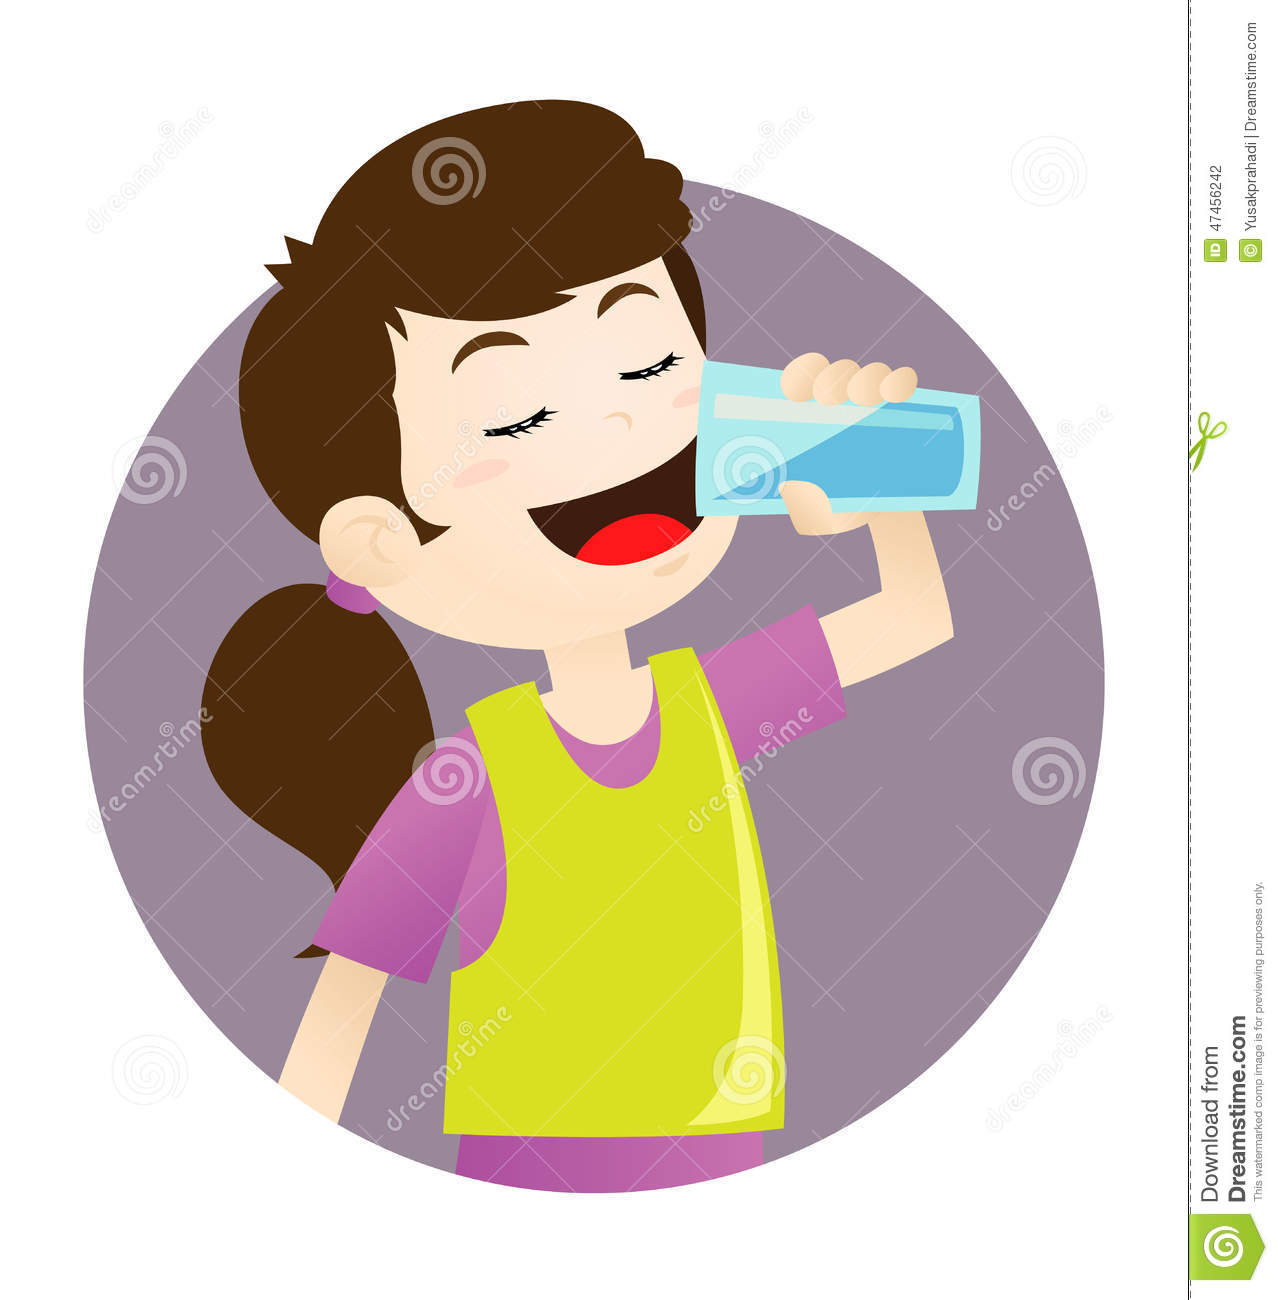 Vector illustration of a girl drinking a glass of water.